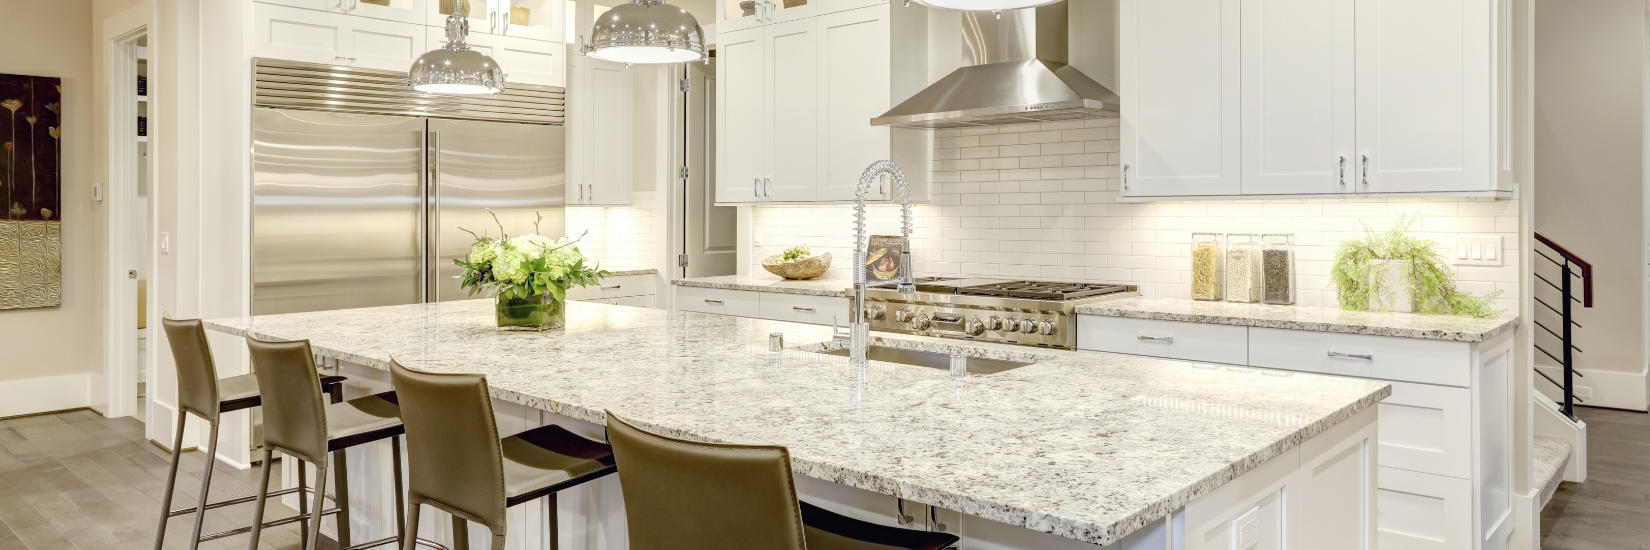 Why Granite Countertops Are The Best